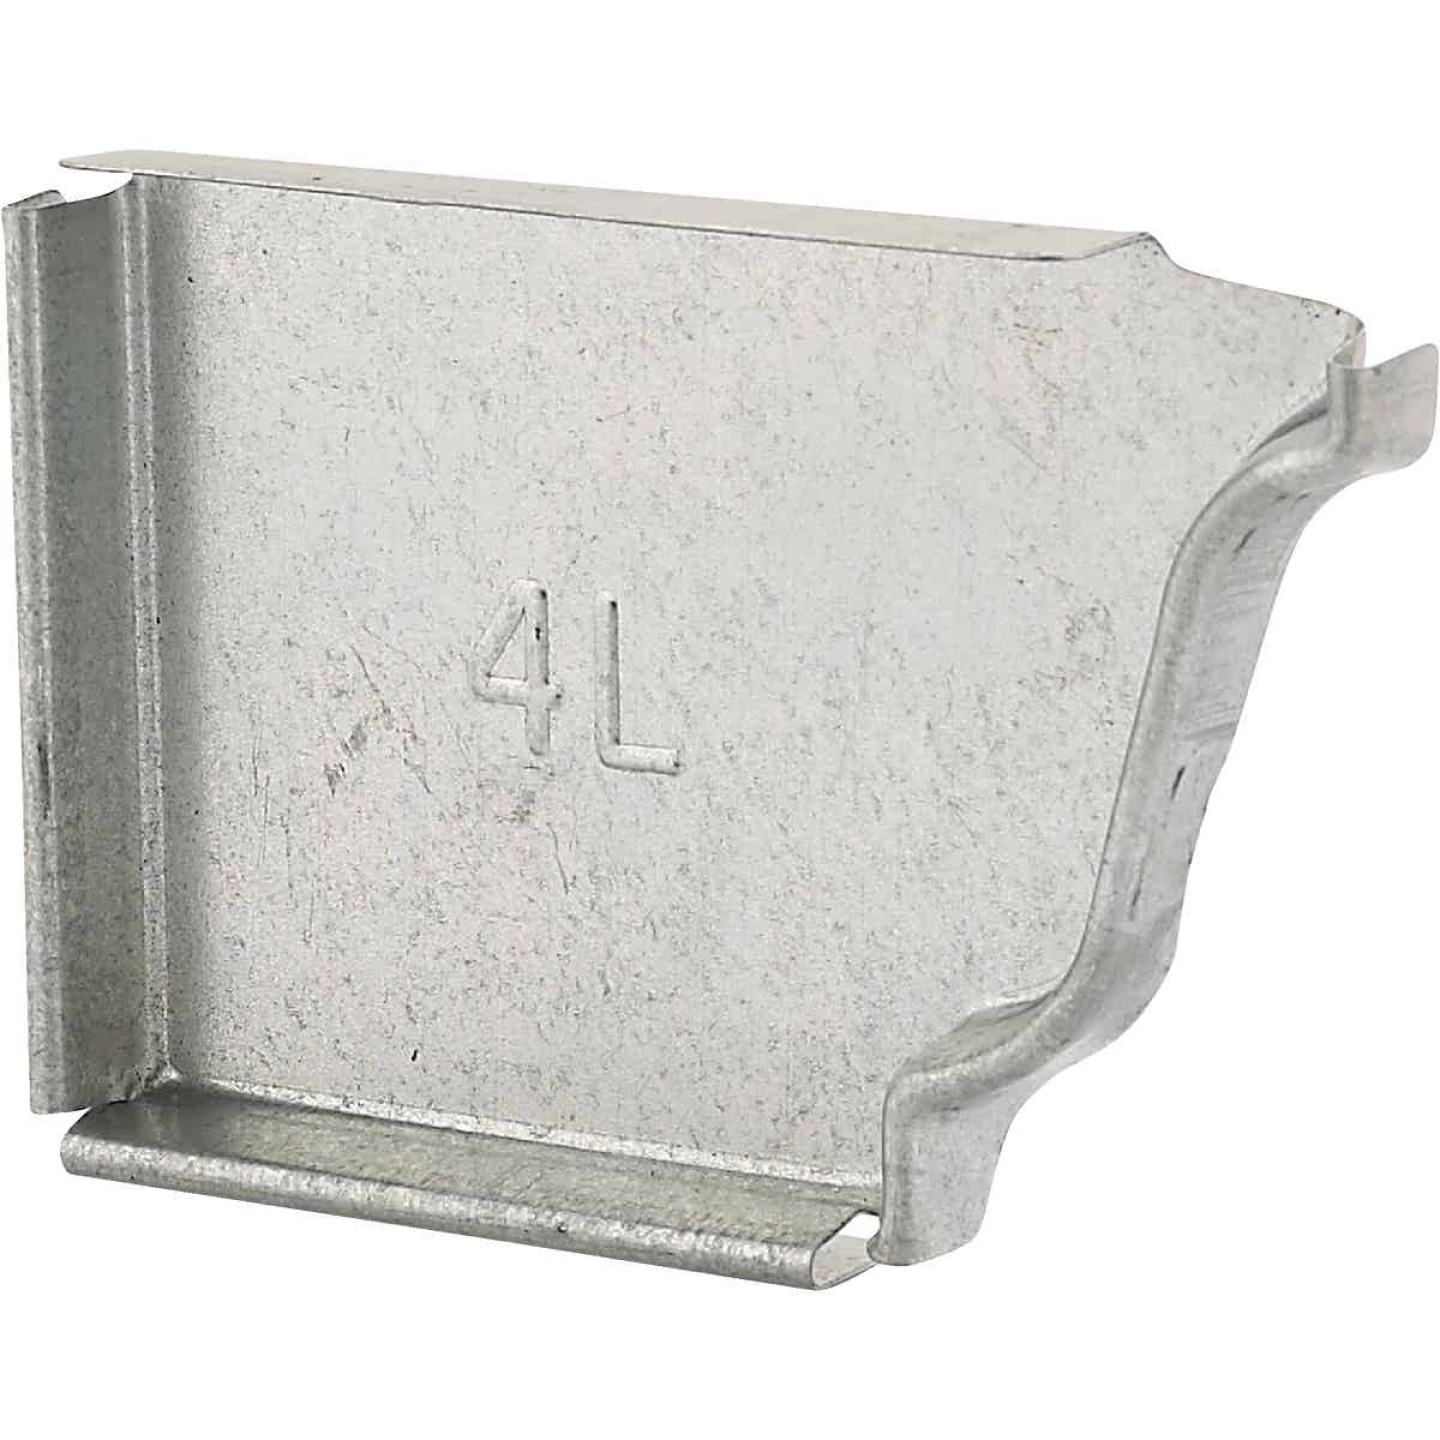 NorWesco 4 In. Galvanized Left Gutter End Cap Image 1